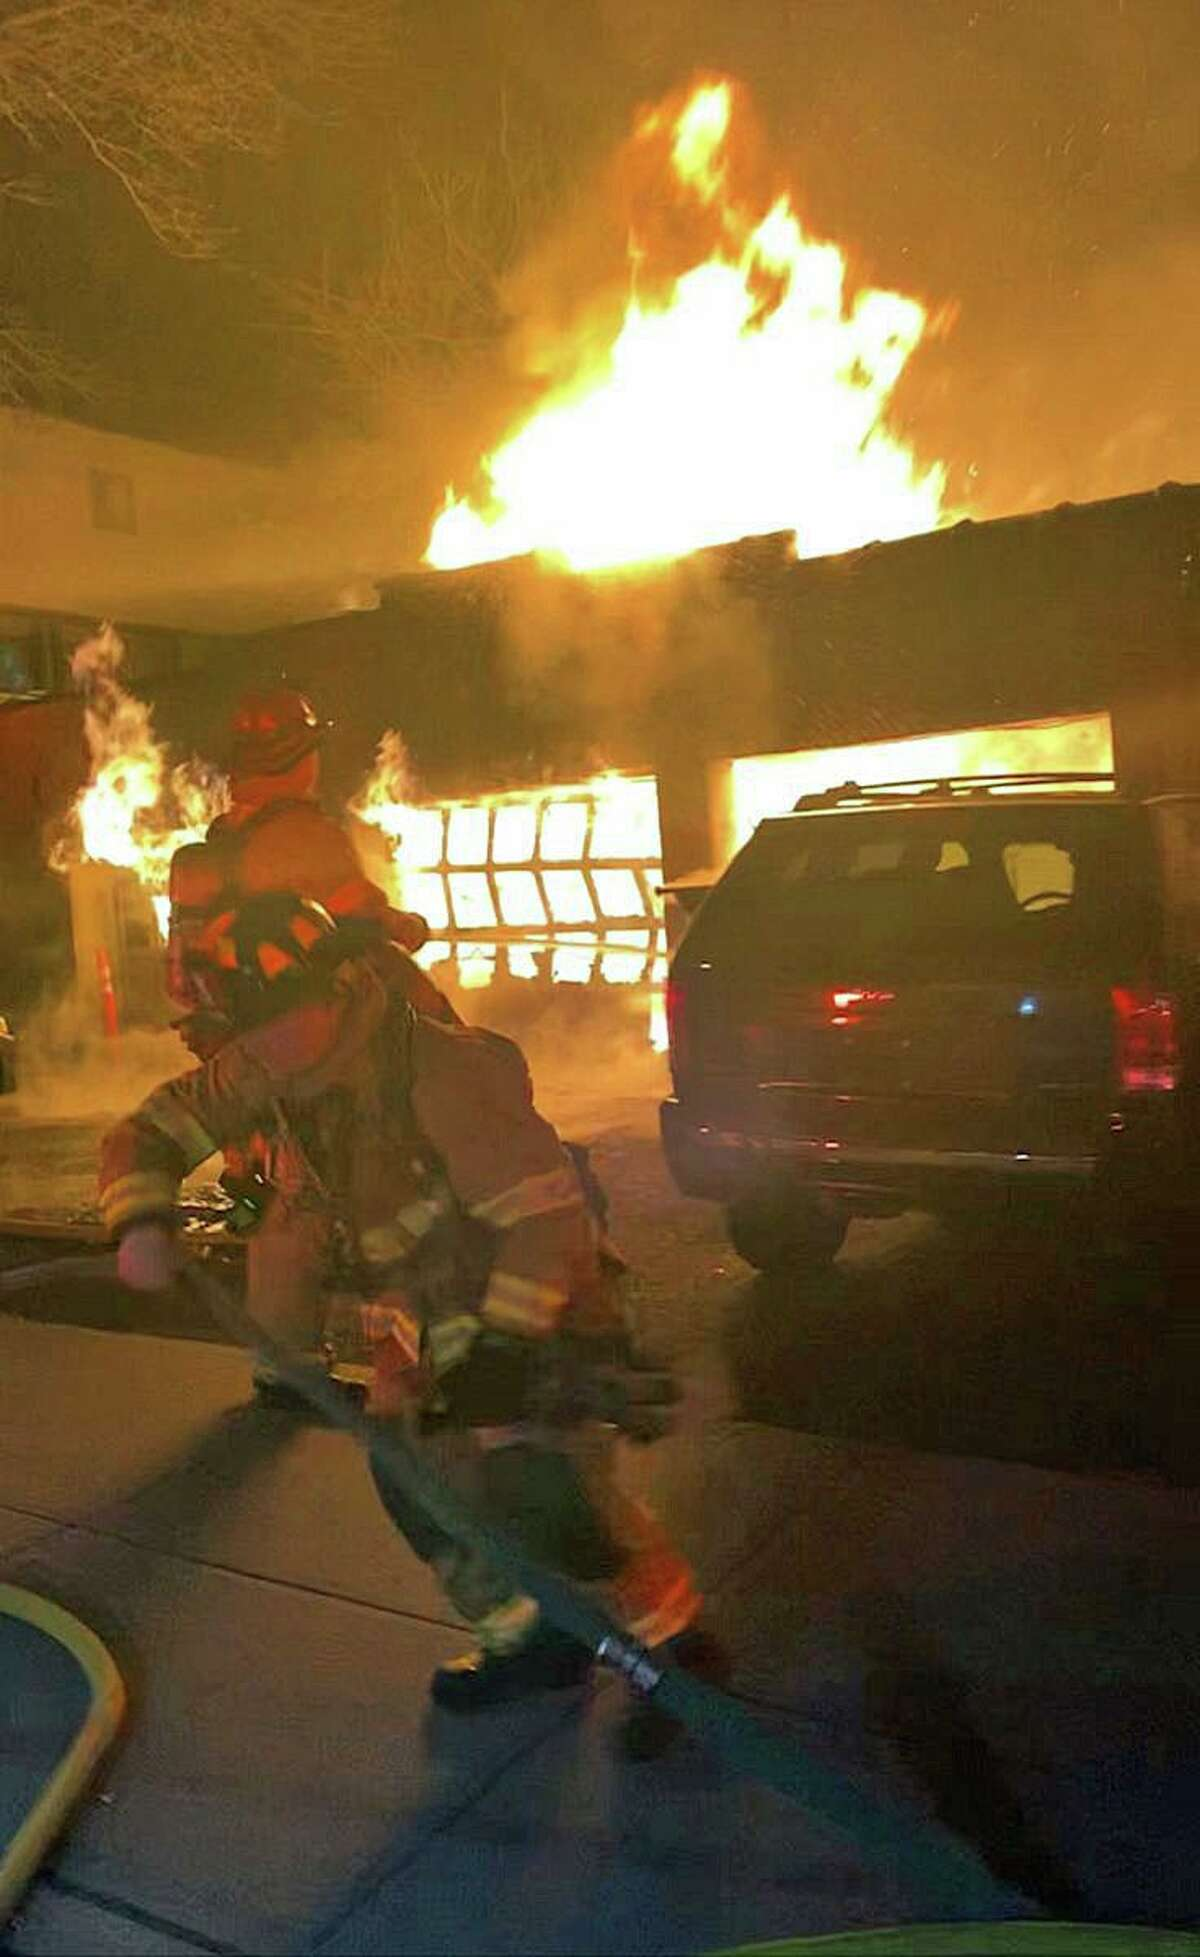 A garage fire on Diaz Street in Stamford, Conn., on Sunday, Nov. 22, 2020.